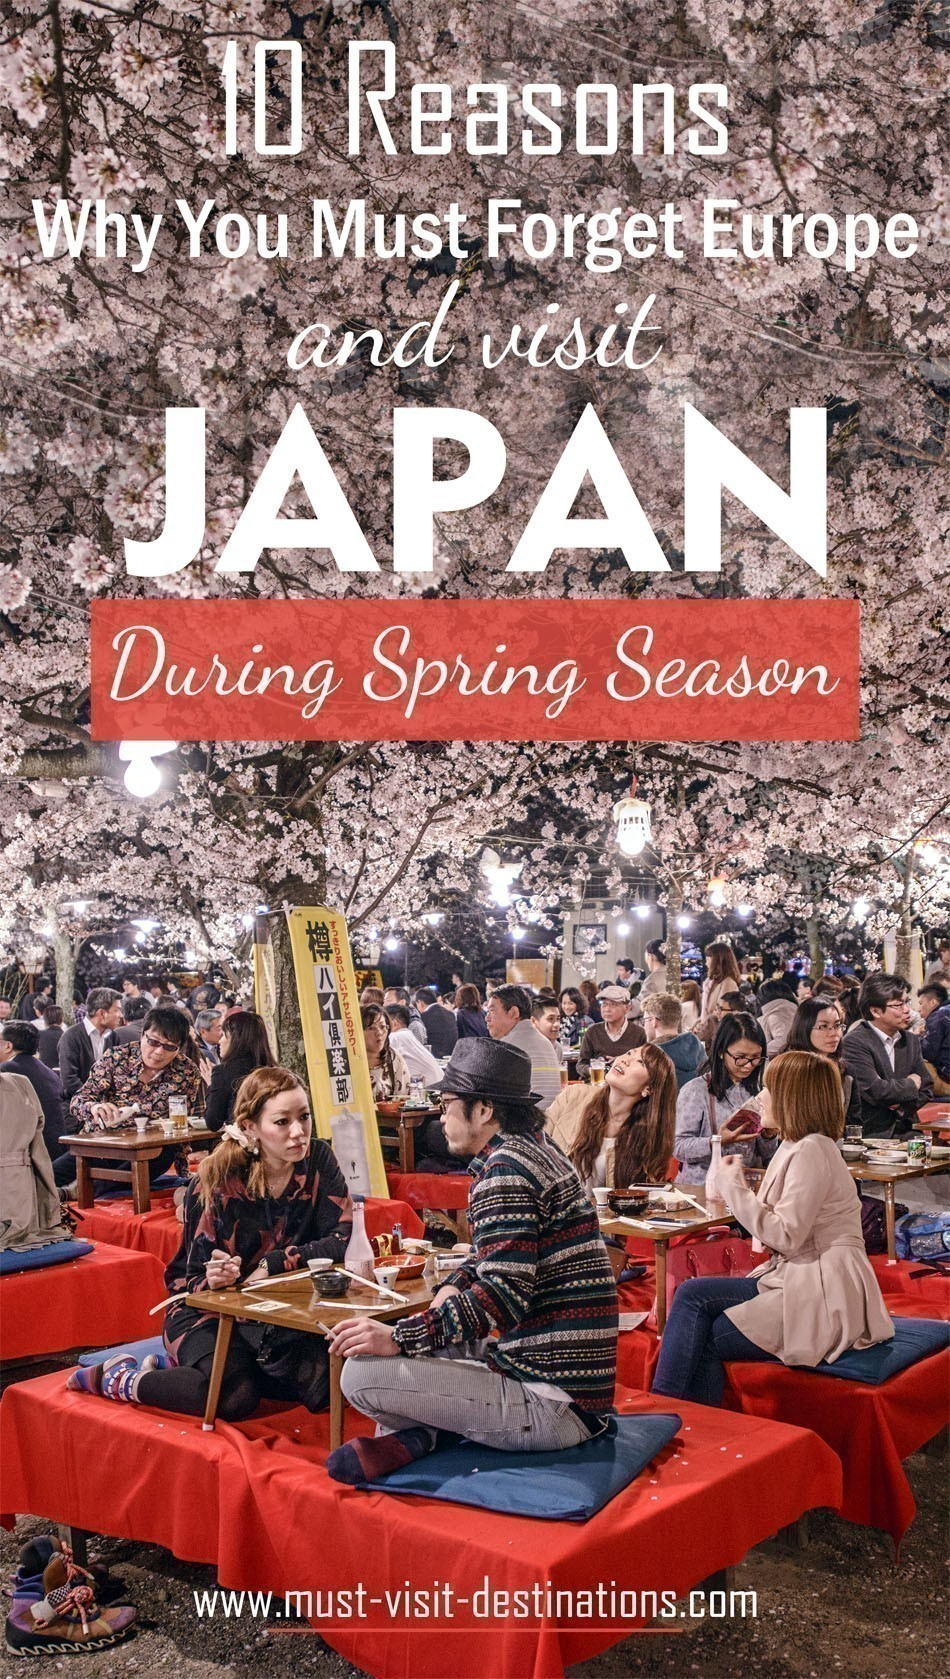 10 Reasons Why You Must Forget Europe and Visit Japan During Spring Season #travel #japan